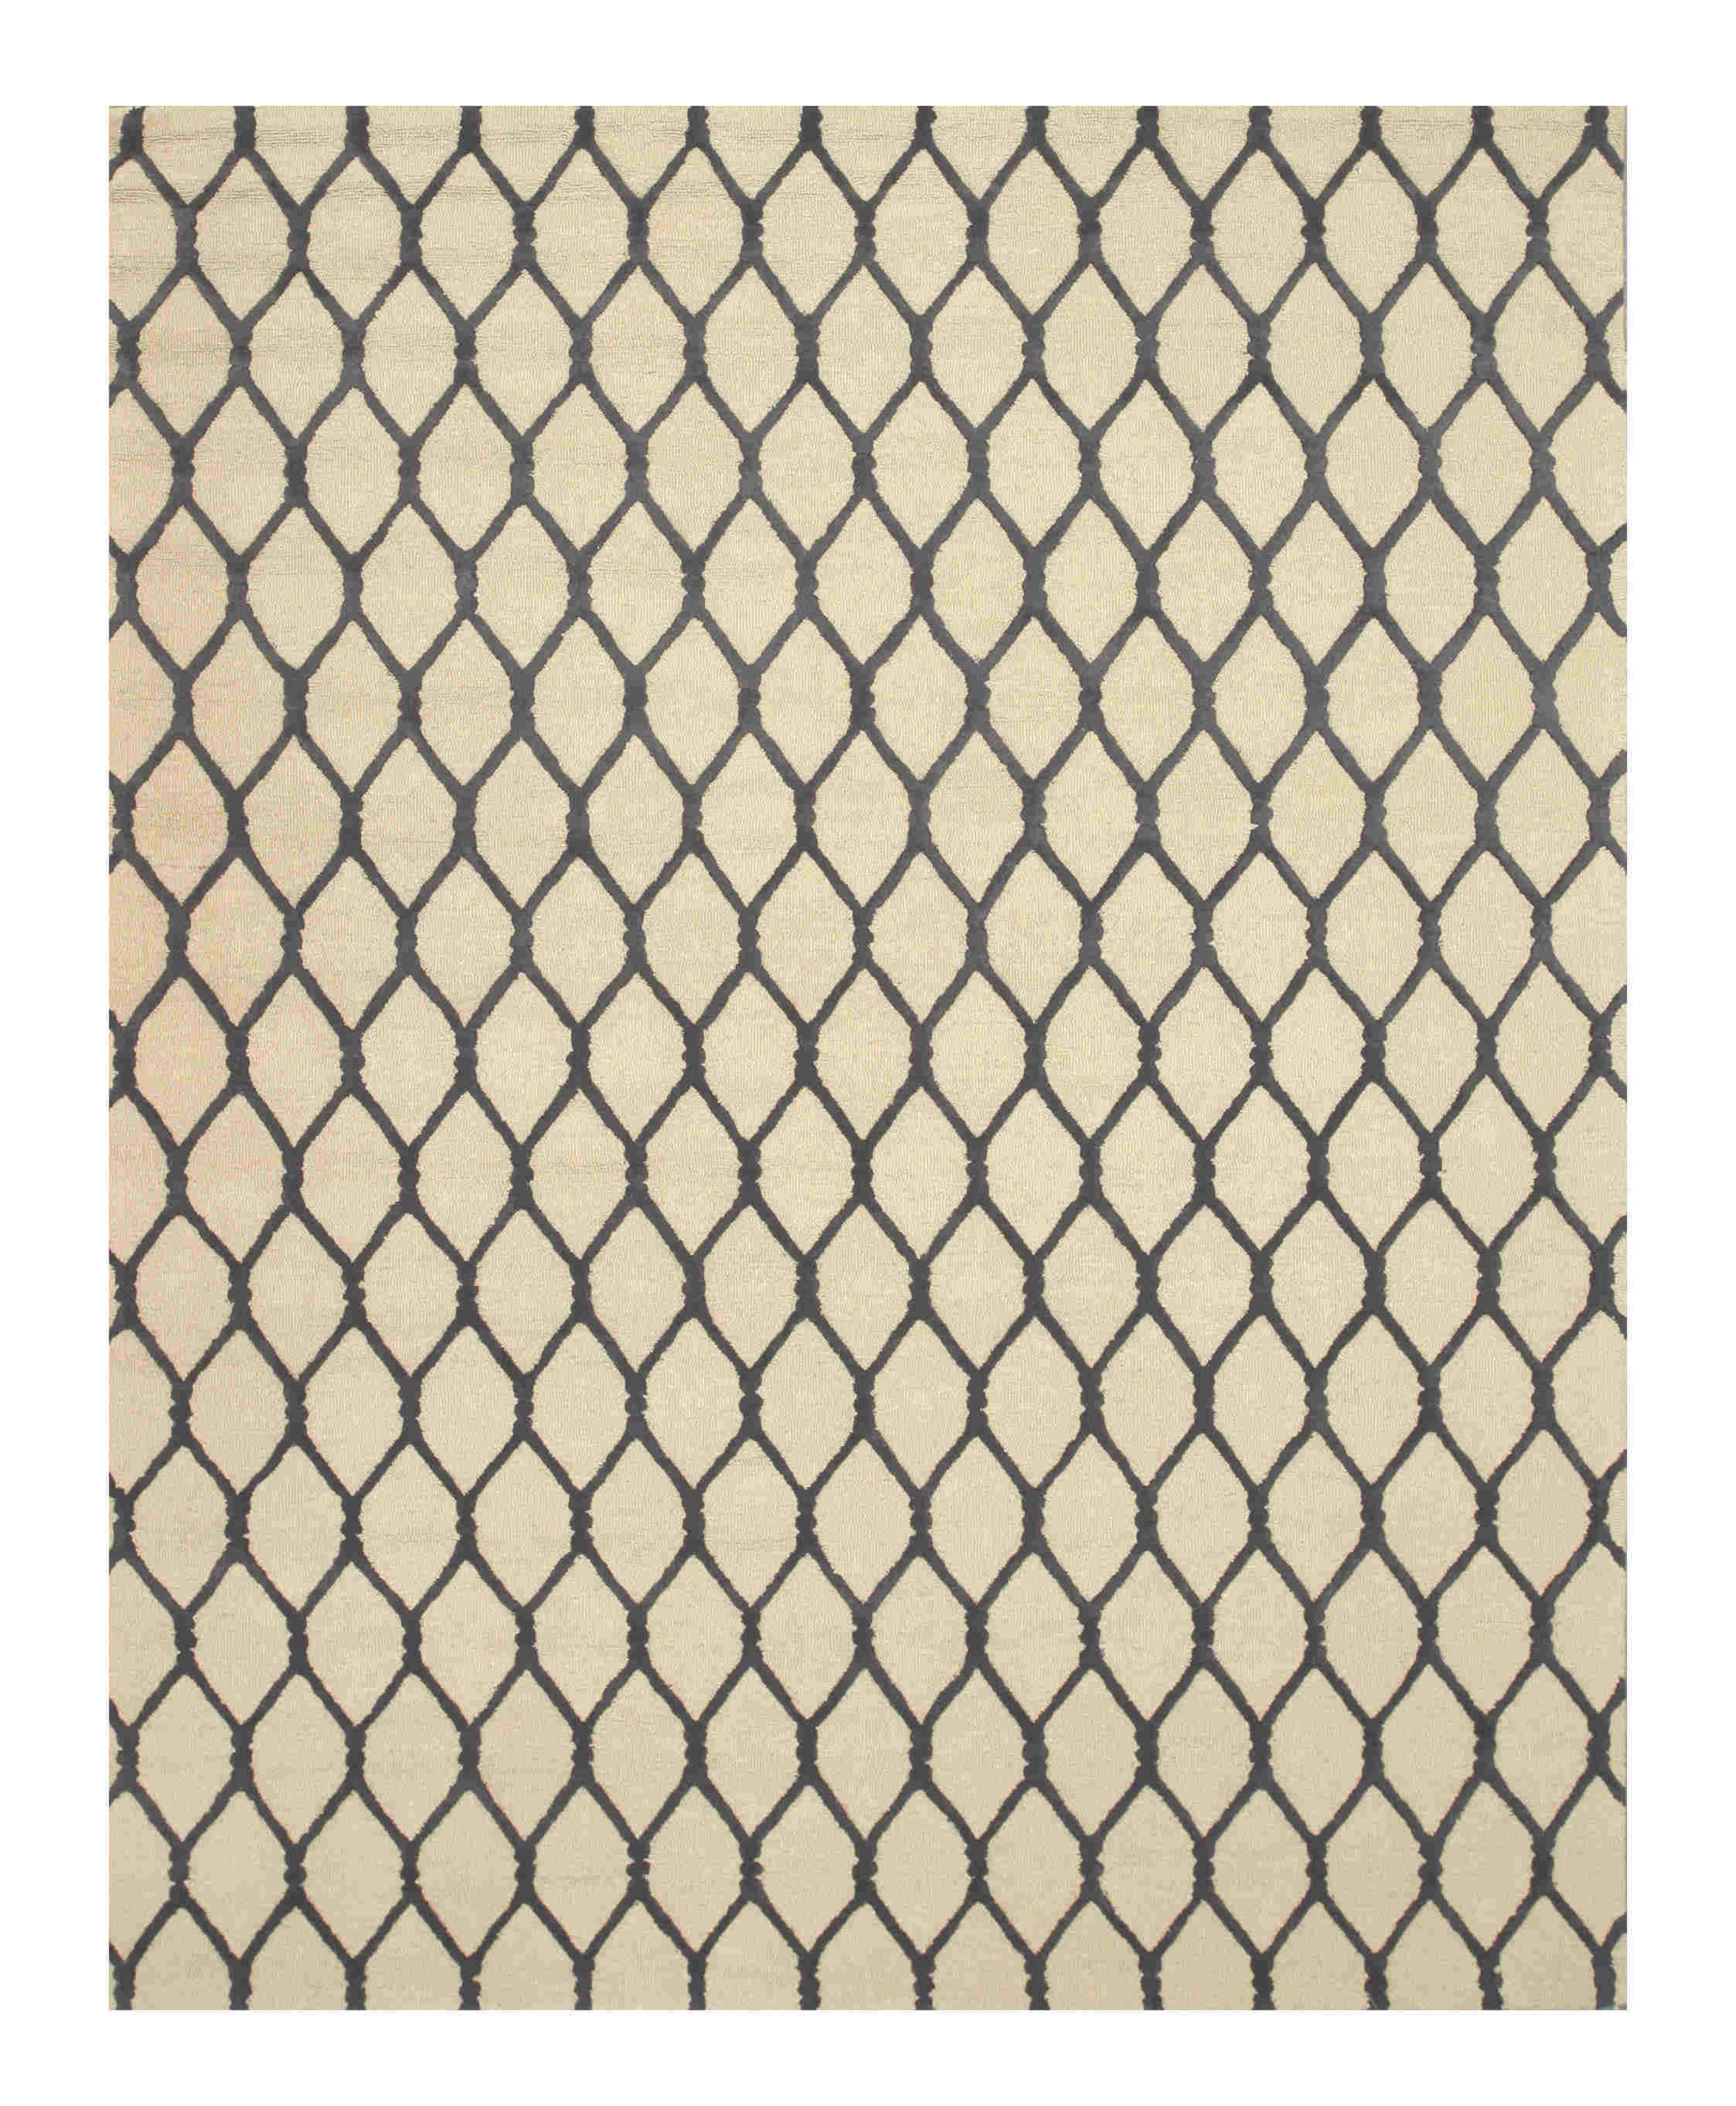 Eorc Vc1001bg Ivory Hand Tufted Wool Chain-link Rug